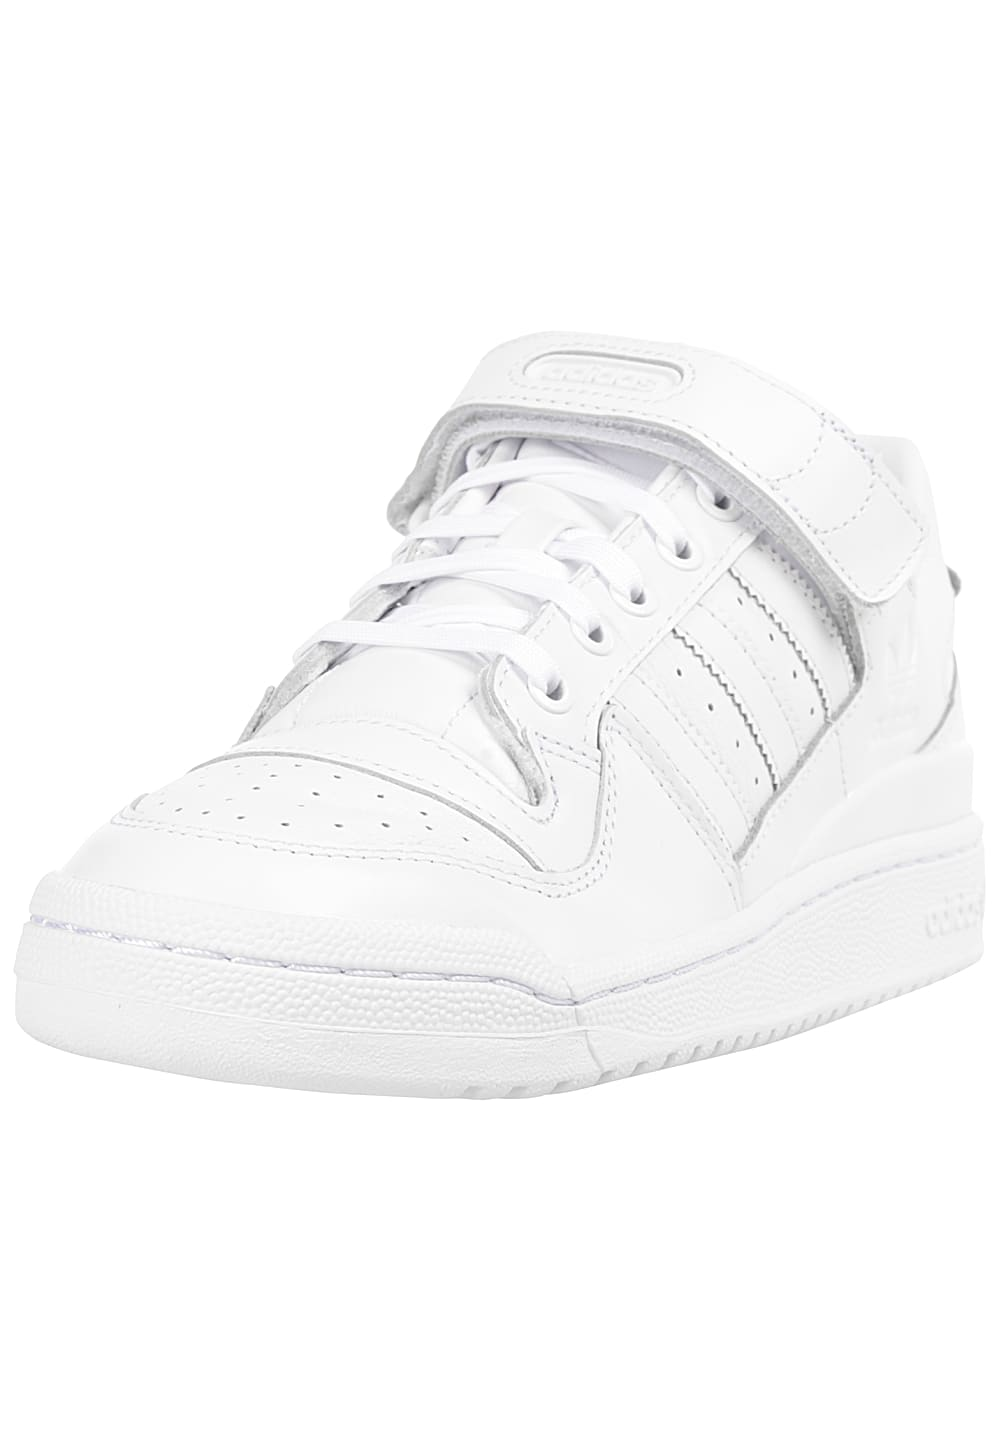 acheter populaire 7c2fb b2d1c ADIDAS ORIGINALS Forum Lo Refined - Sneakers for Men - White